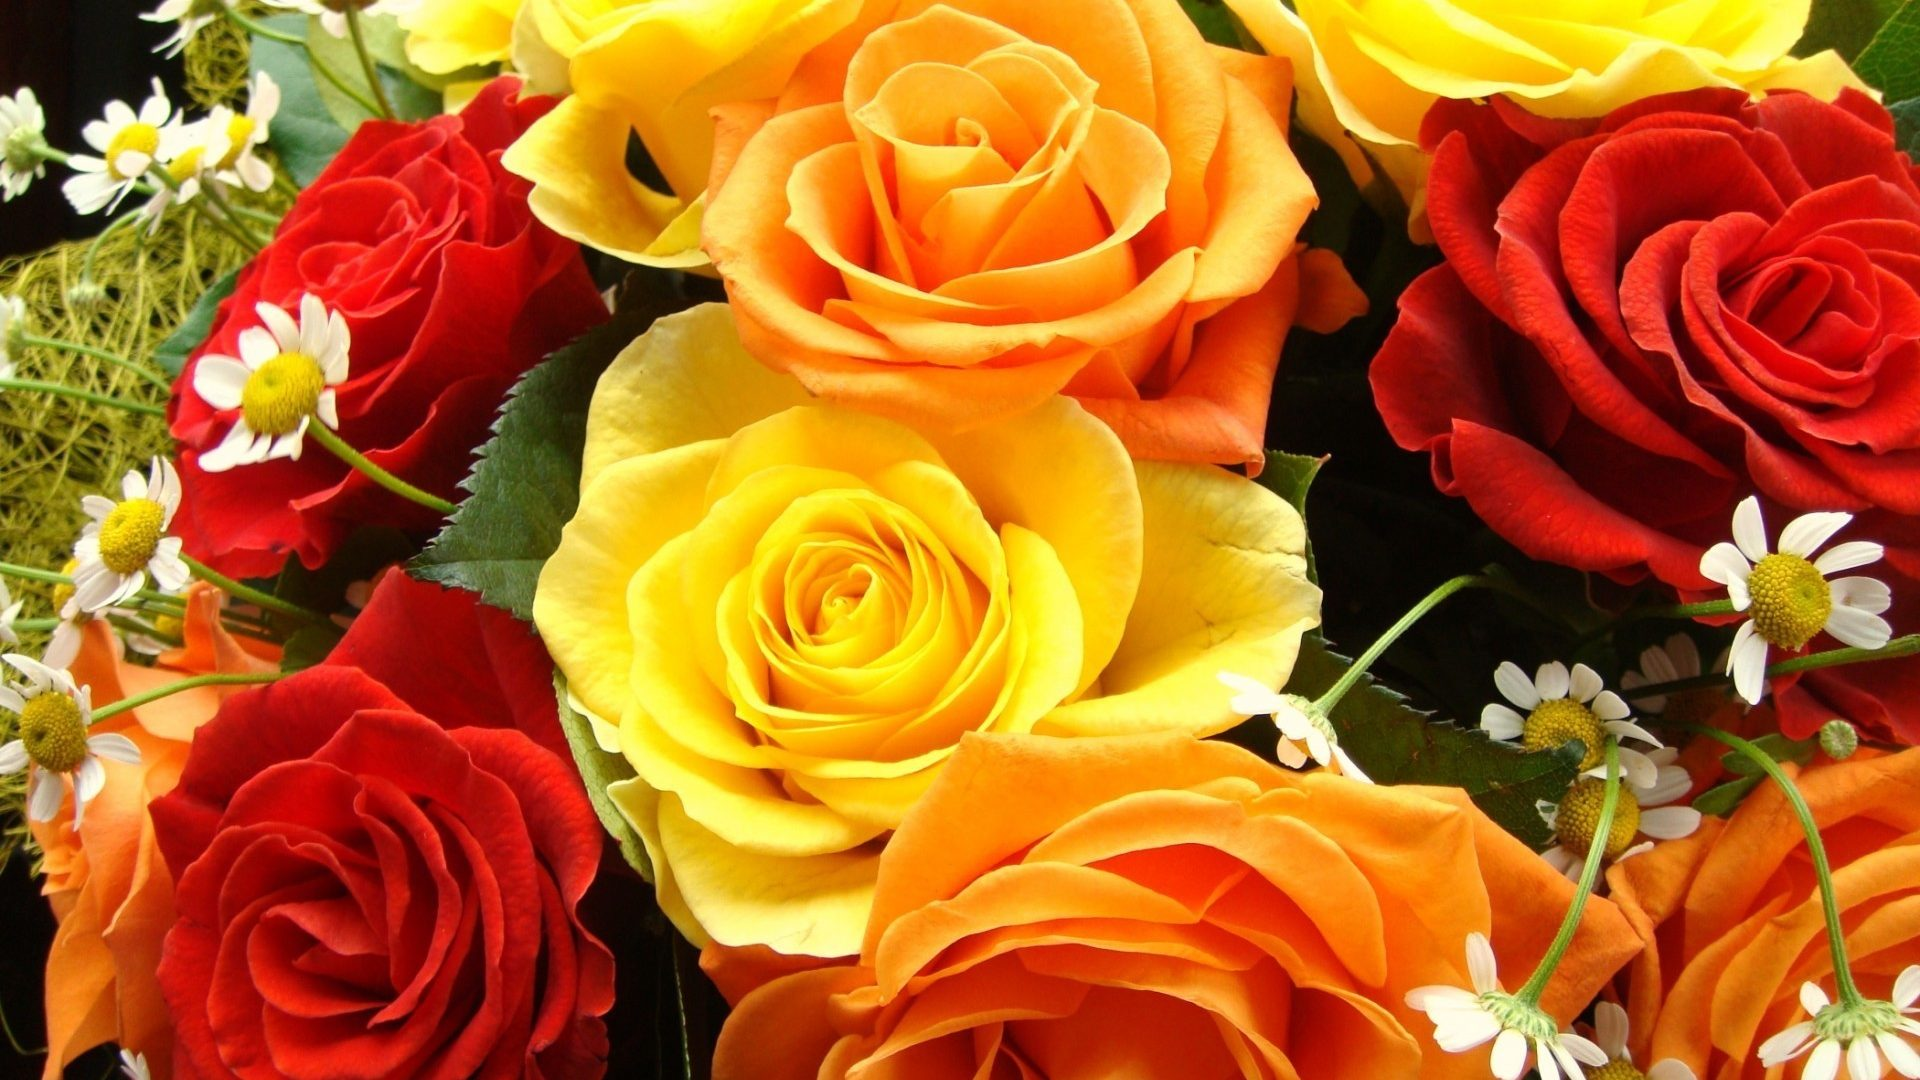 Colorful Rose Bouquet Widescreen Wallpapers - Yellow And Red Rose Hd , HD Wallpaper & Backgrounds